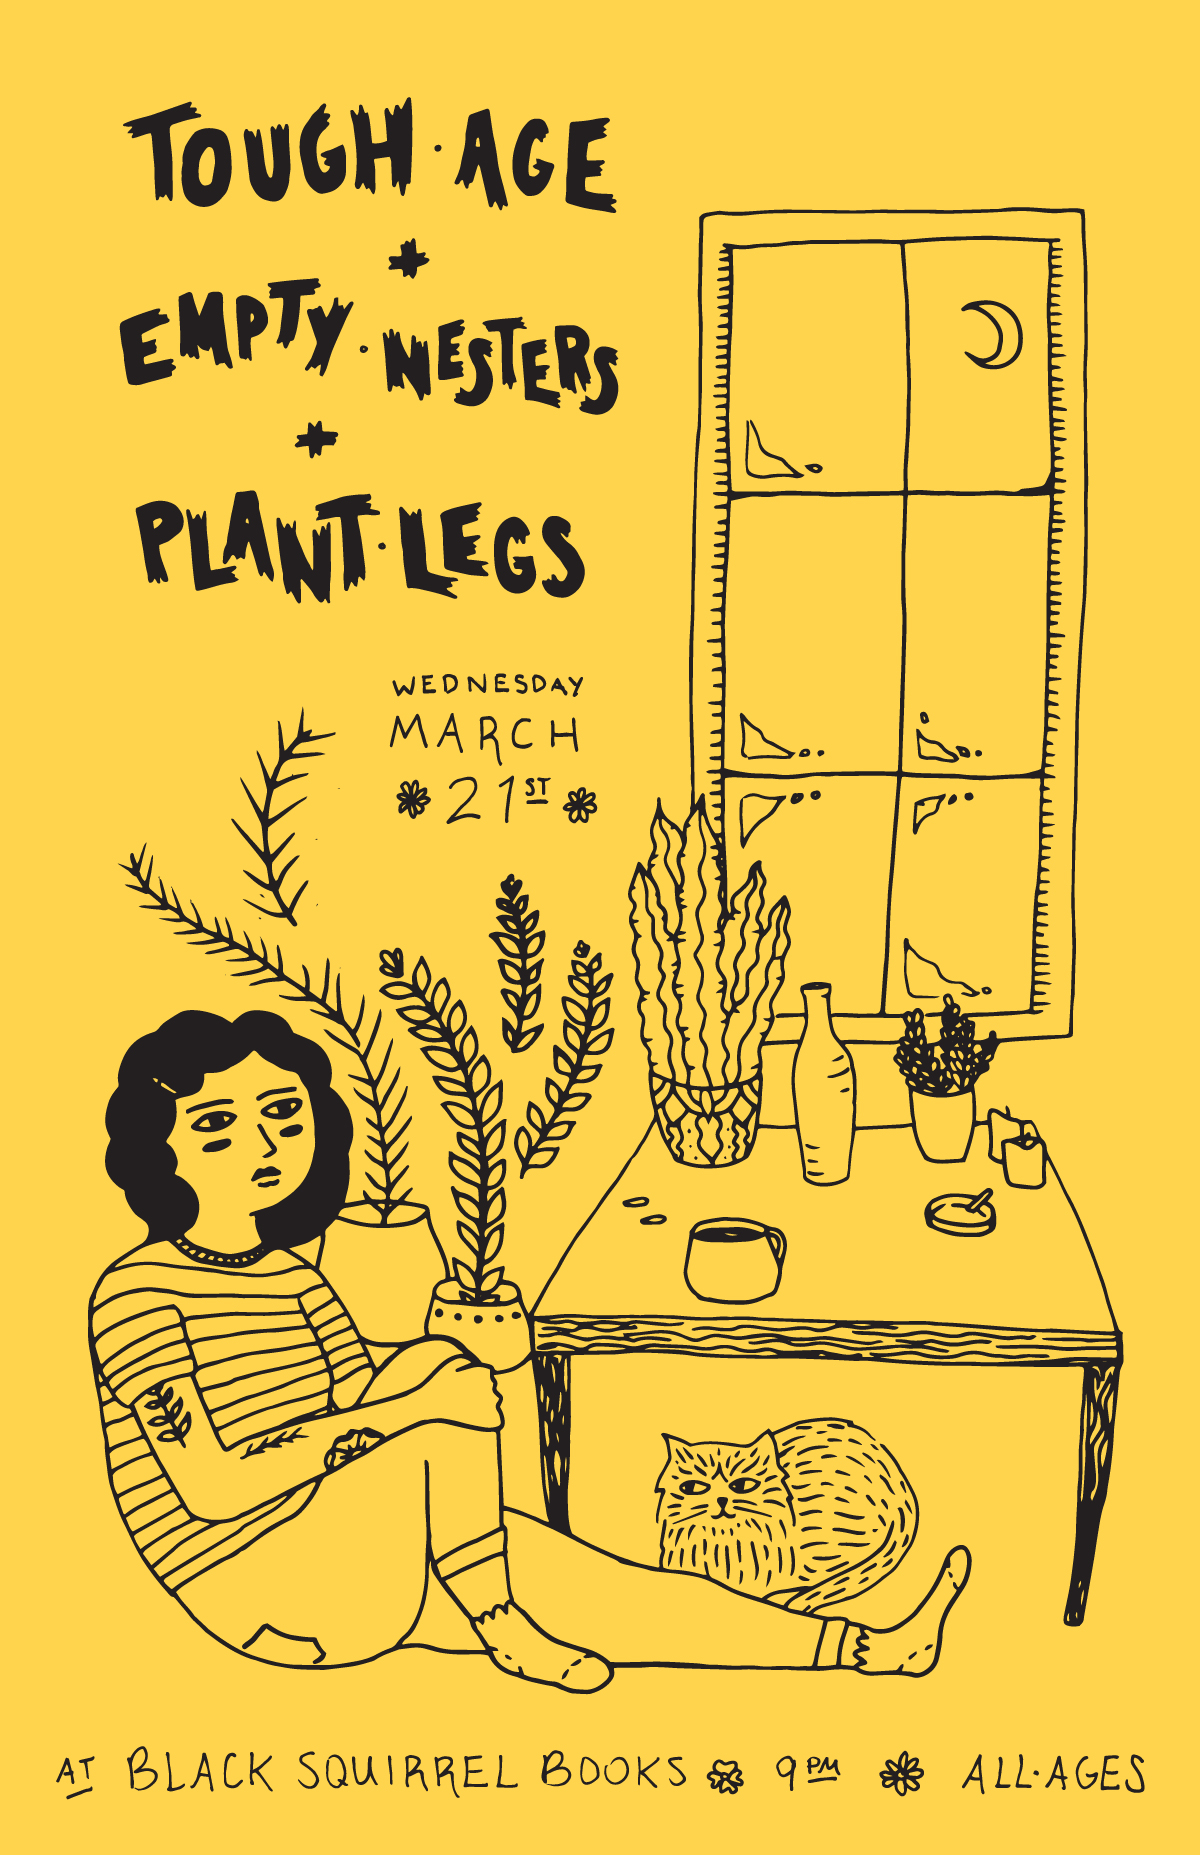 plant legs show poster by robin richardson-dupuis